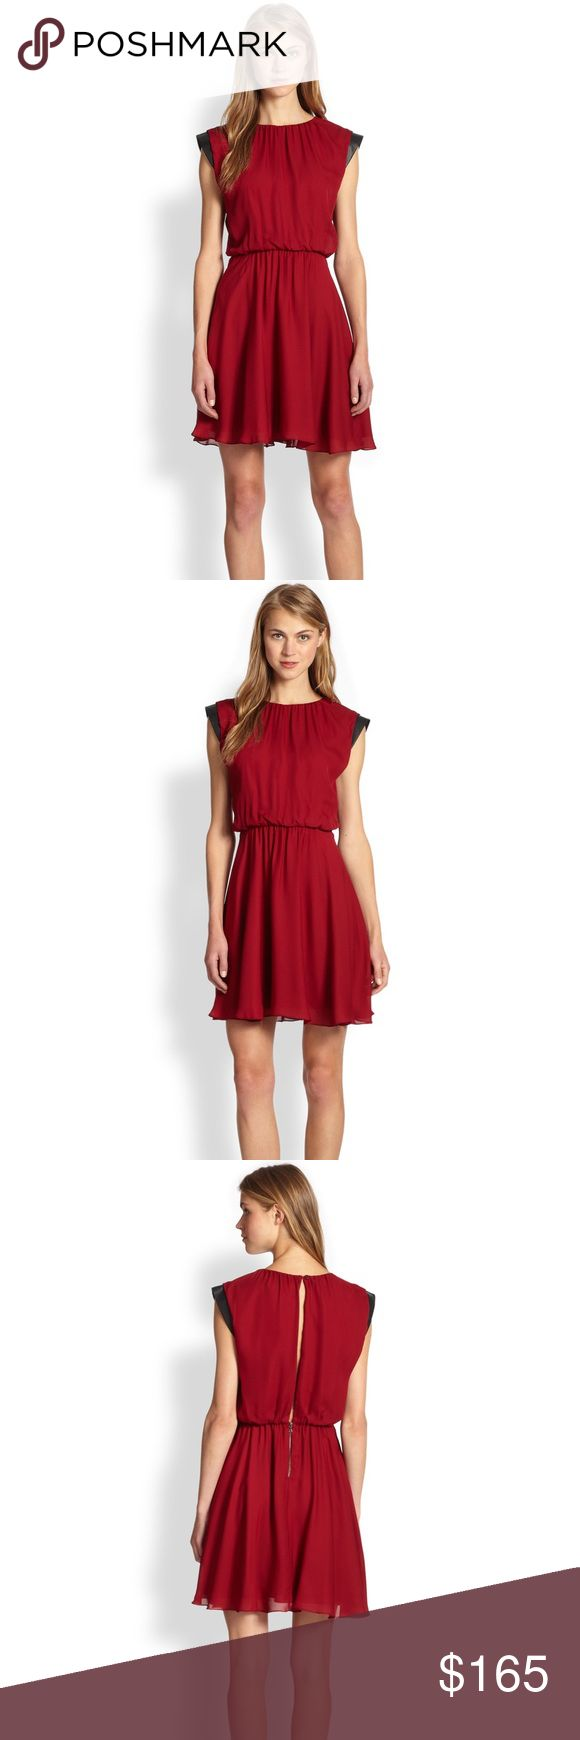 Red dress xxs vn